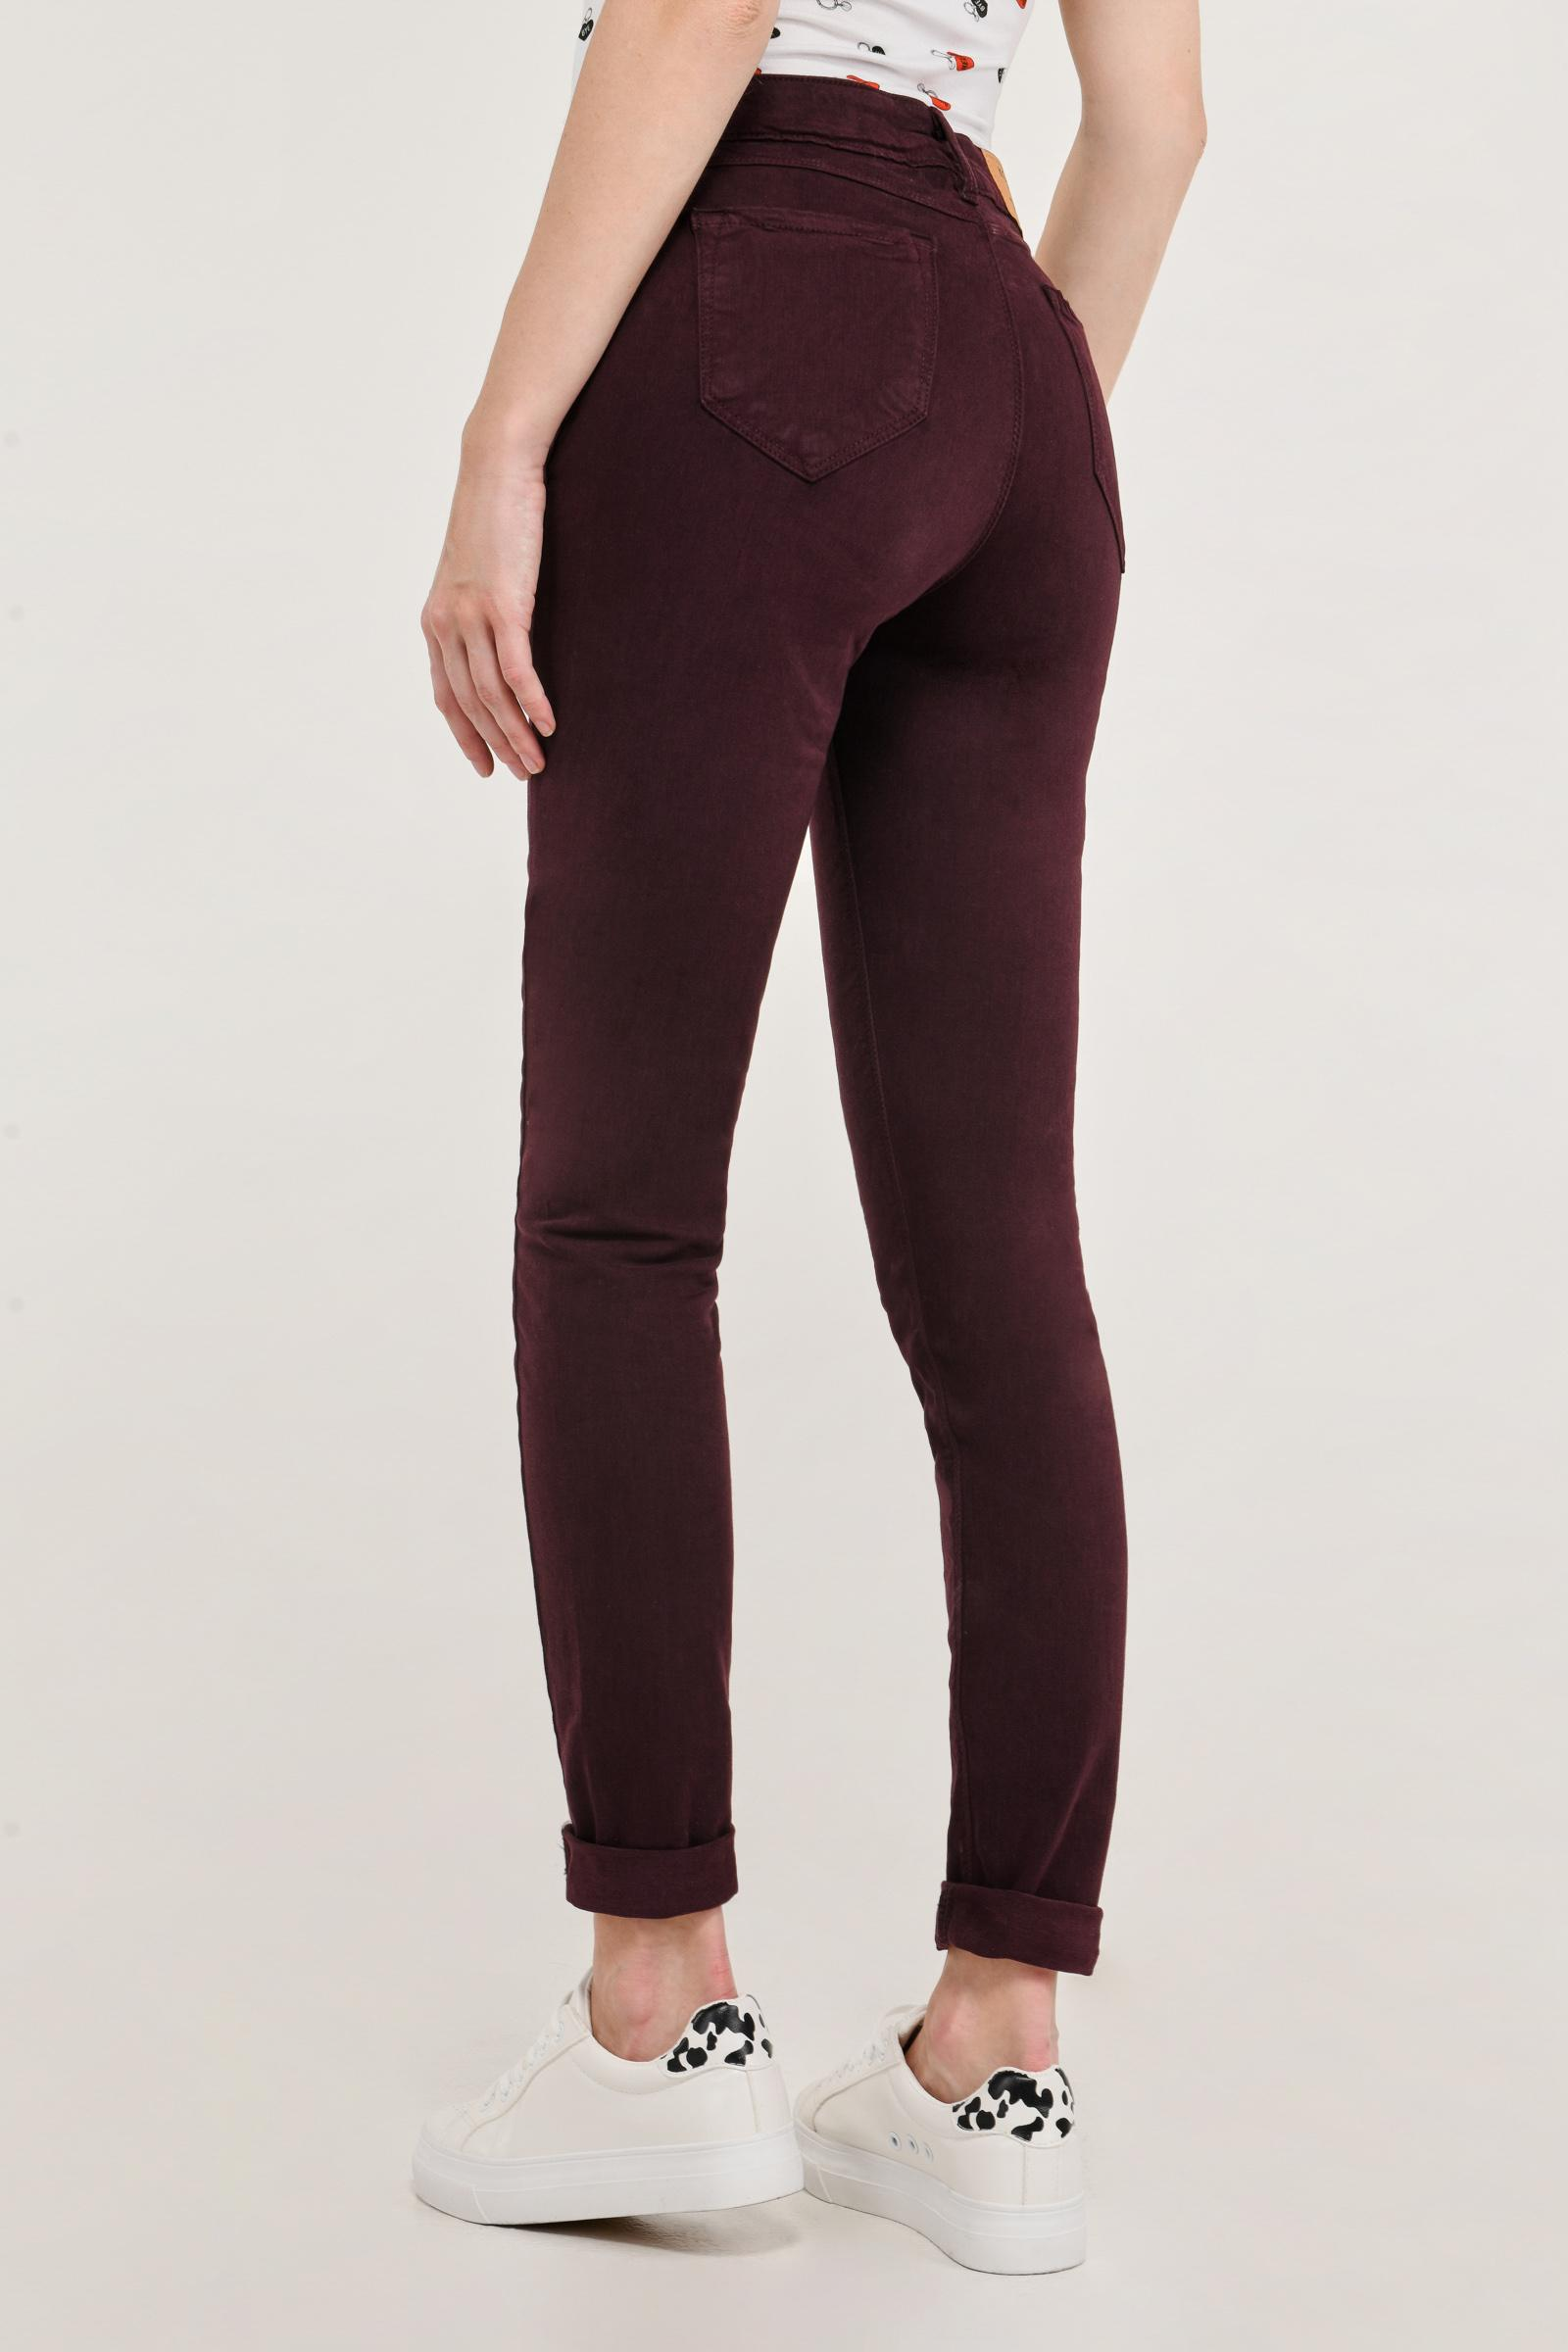 KOAJ-PANTALON KOAJ DRILL JEGGING TM 3 3/19